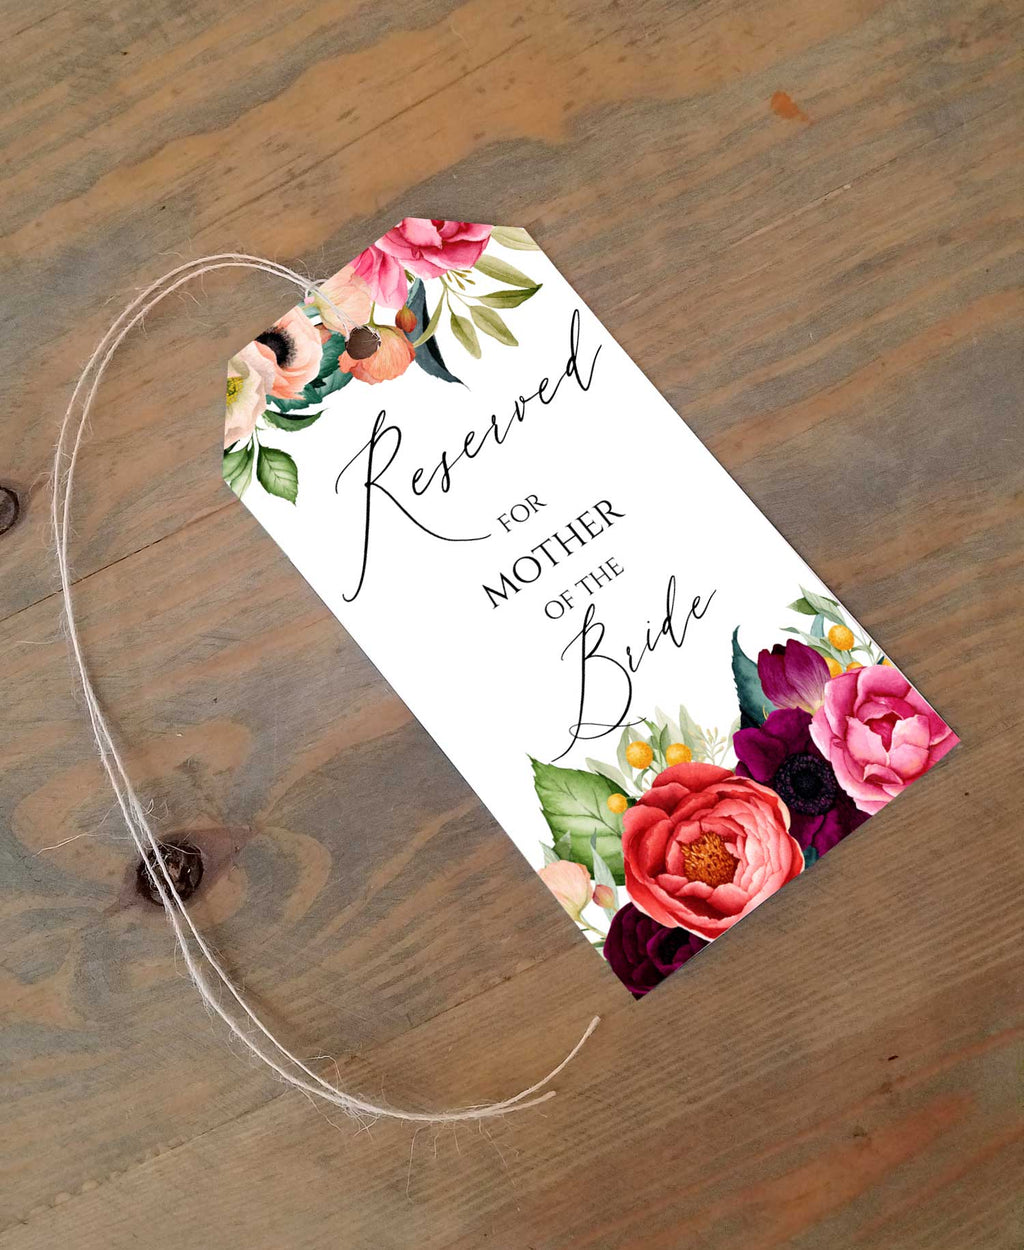 Boho Flowers- Reserved Seating Tags